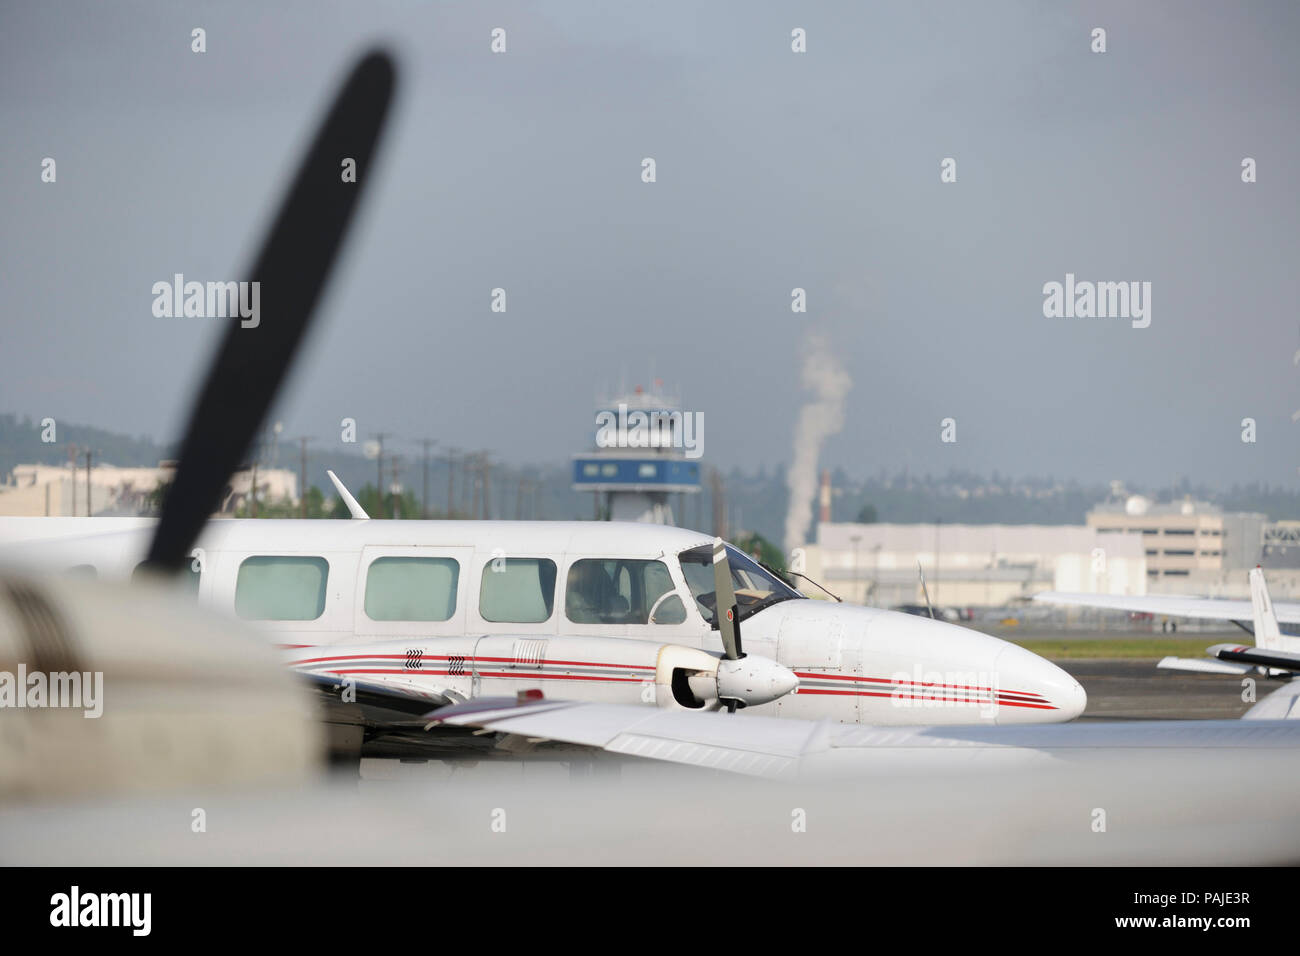 windows of Aeroflight Executive Services Piper PA-31-350 Navajo Chieftain parked and air-traffic control-tower behind Stock Photo